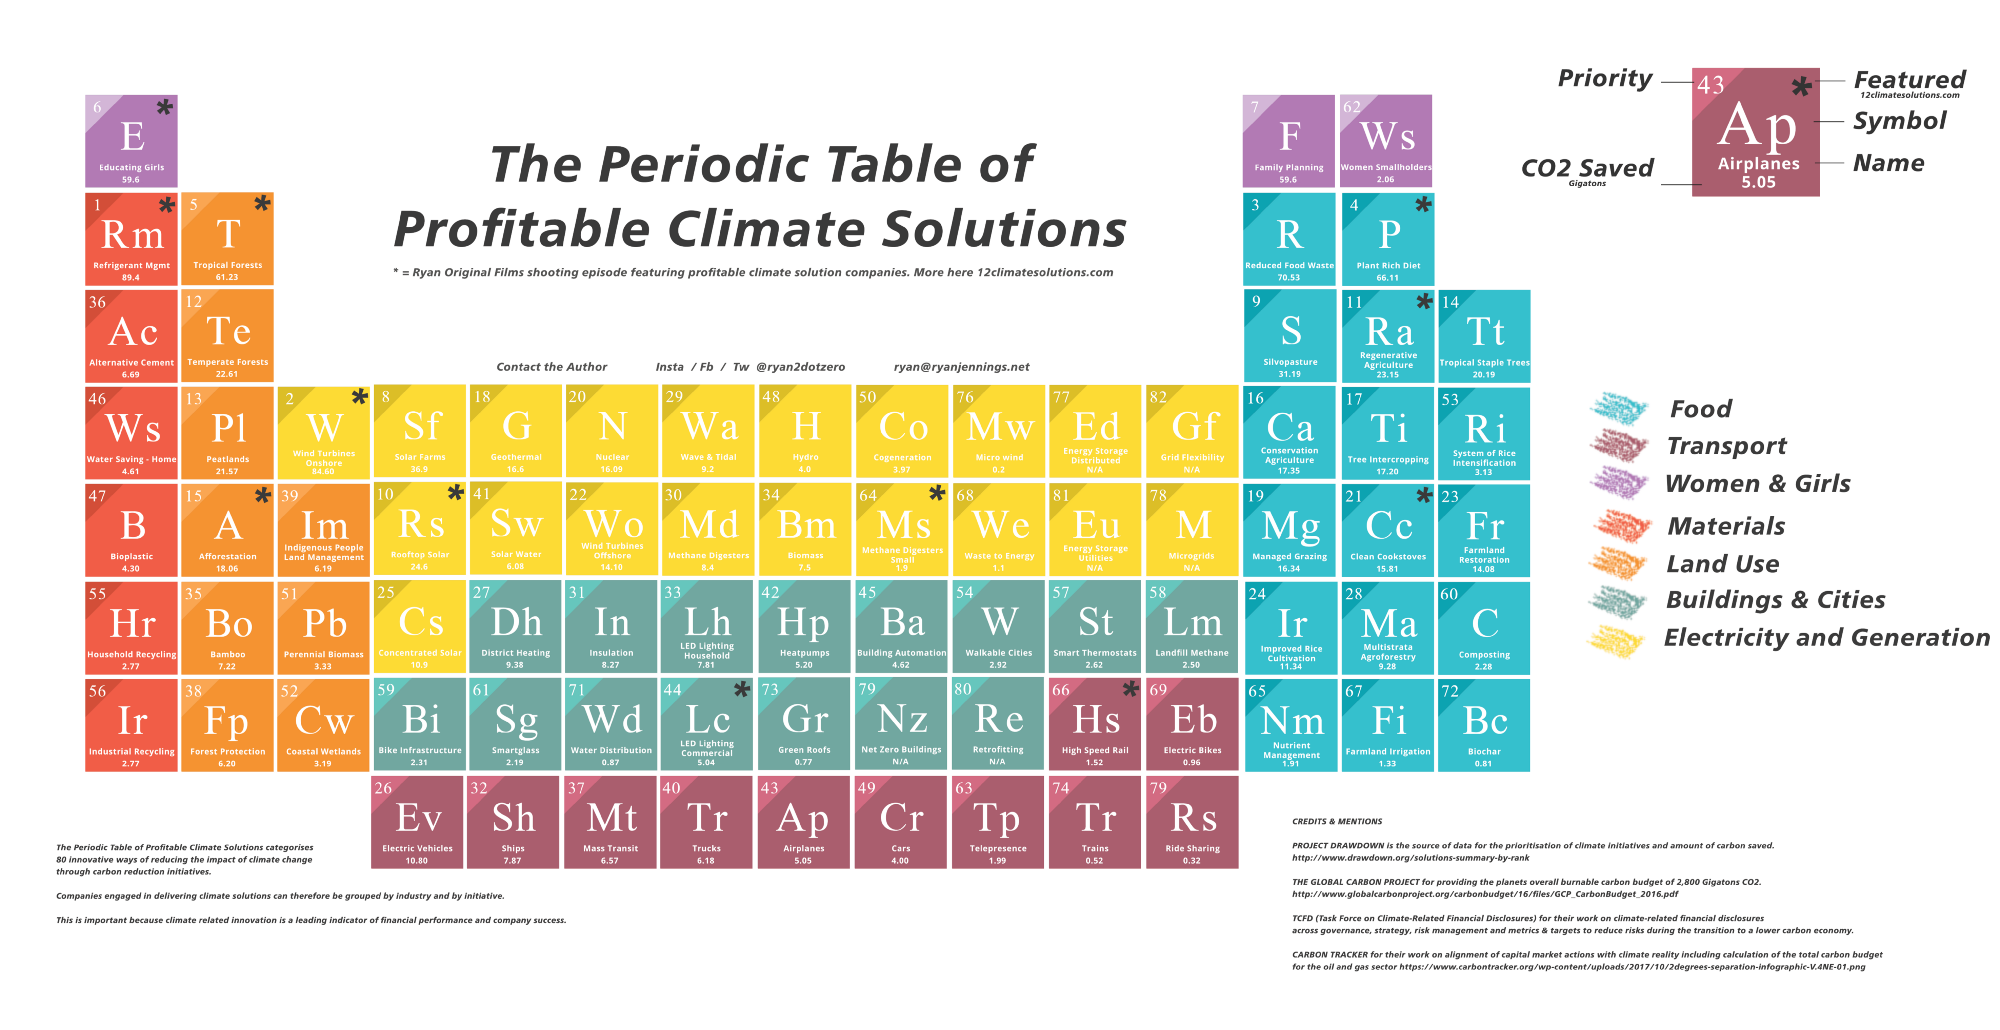 Its time for climate capitalism its your turn the periodic table for profitable climate solutions credit ryan jennings gamestrikefo Gallery